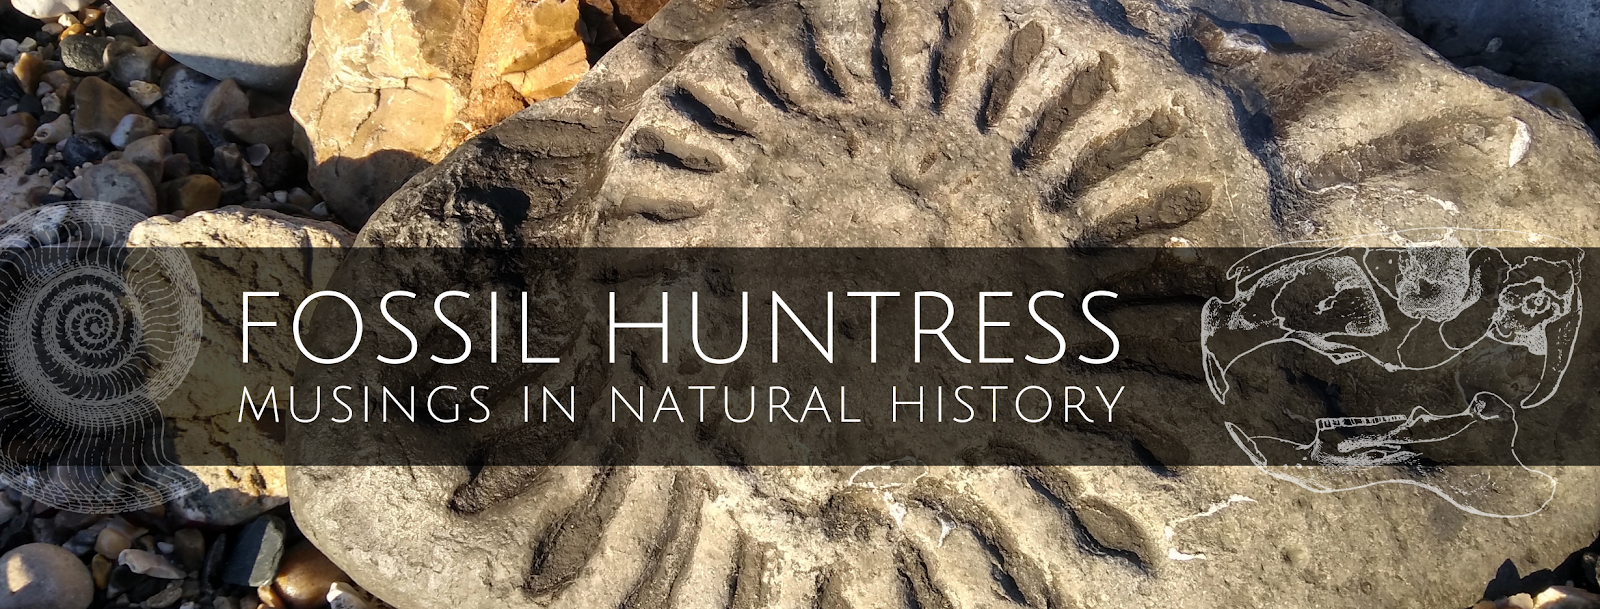 Fossil Huntress: Musings in Natural History